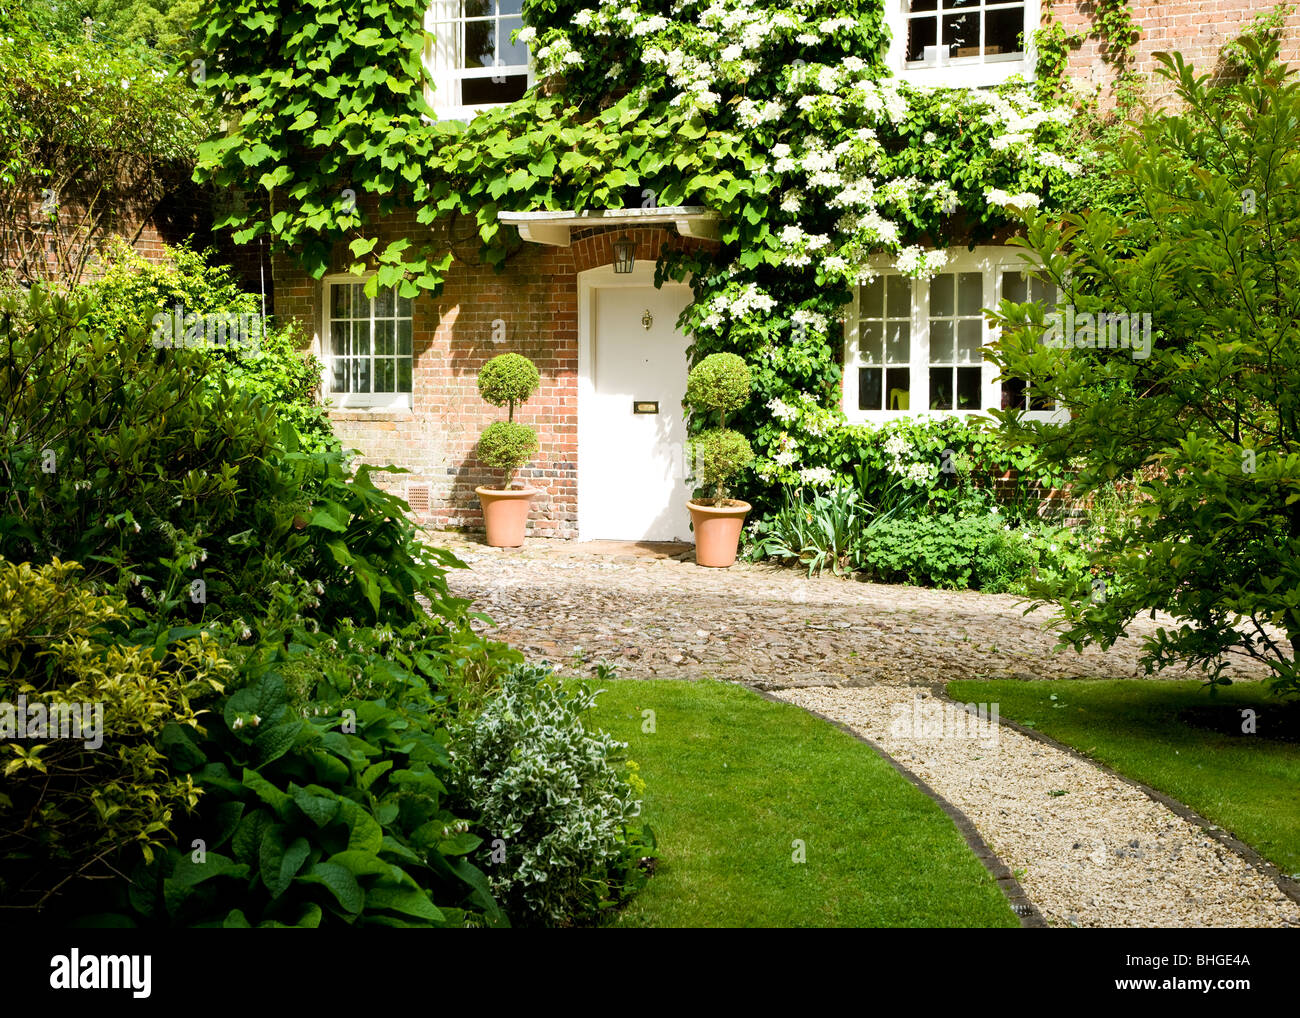 The Pretty Front Door And Windows Of A Typical English Country Stock Photo R